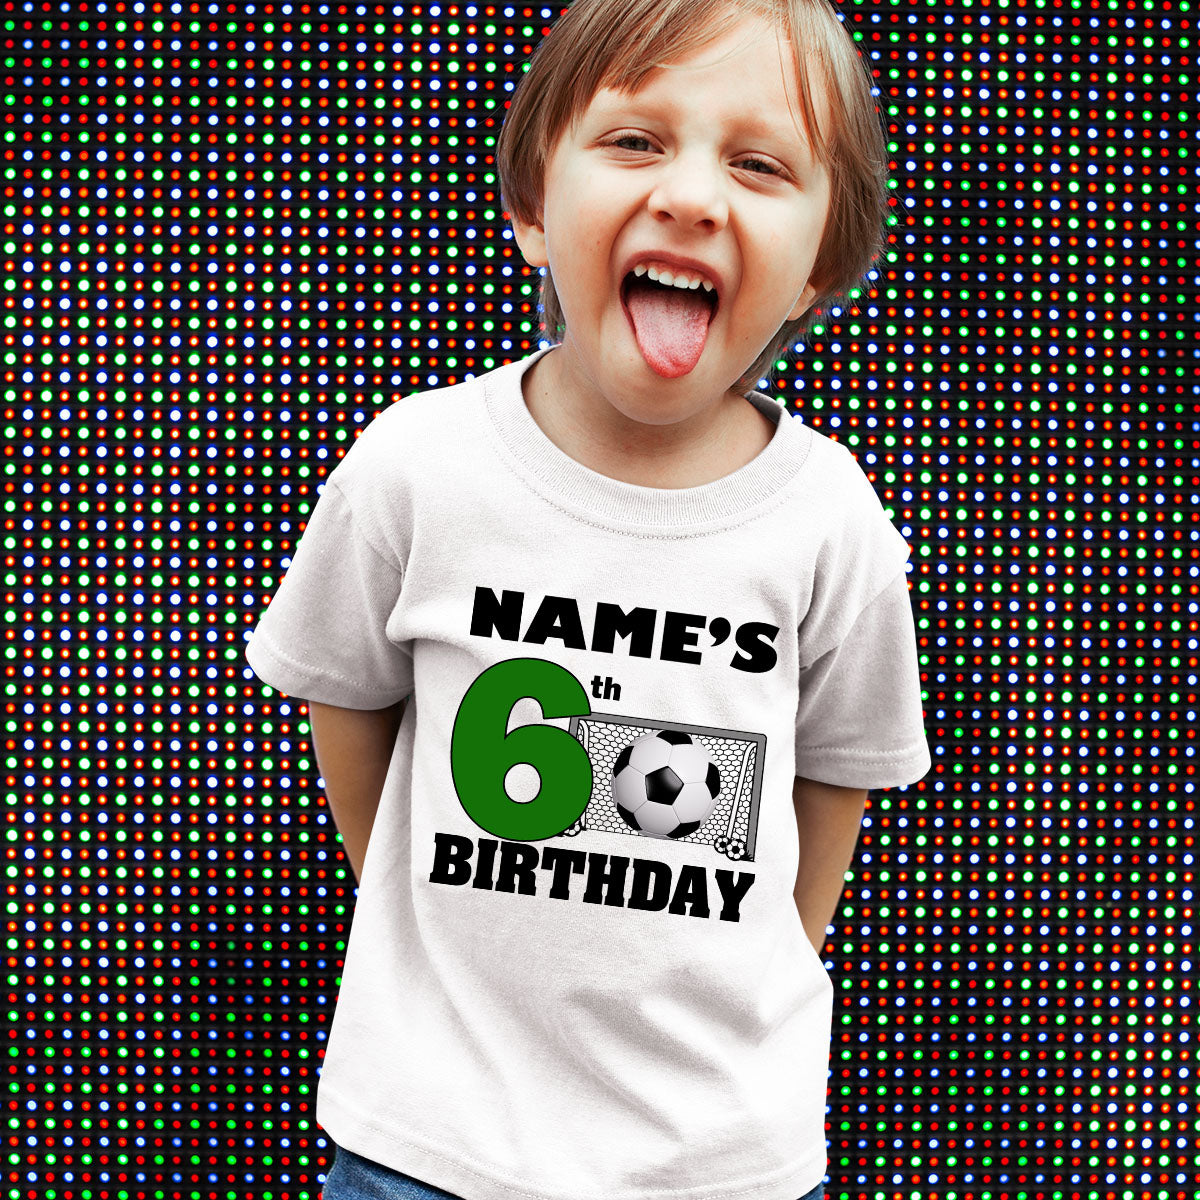 Sprinklecart Surprice Gift | Personalized Name Printed Cutie T Shirt for Your Little One